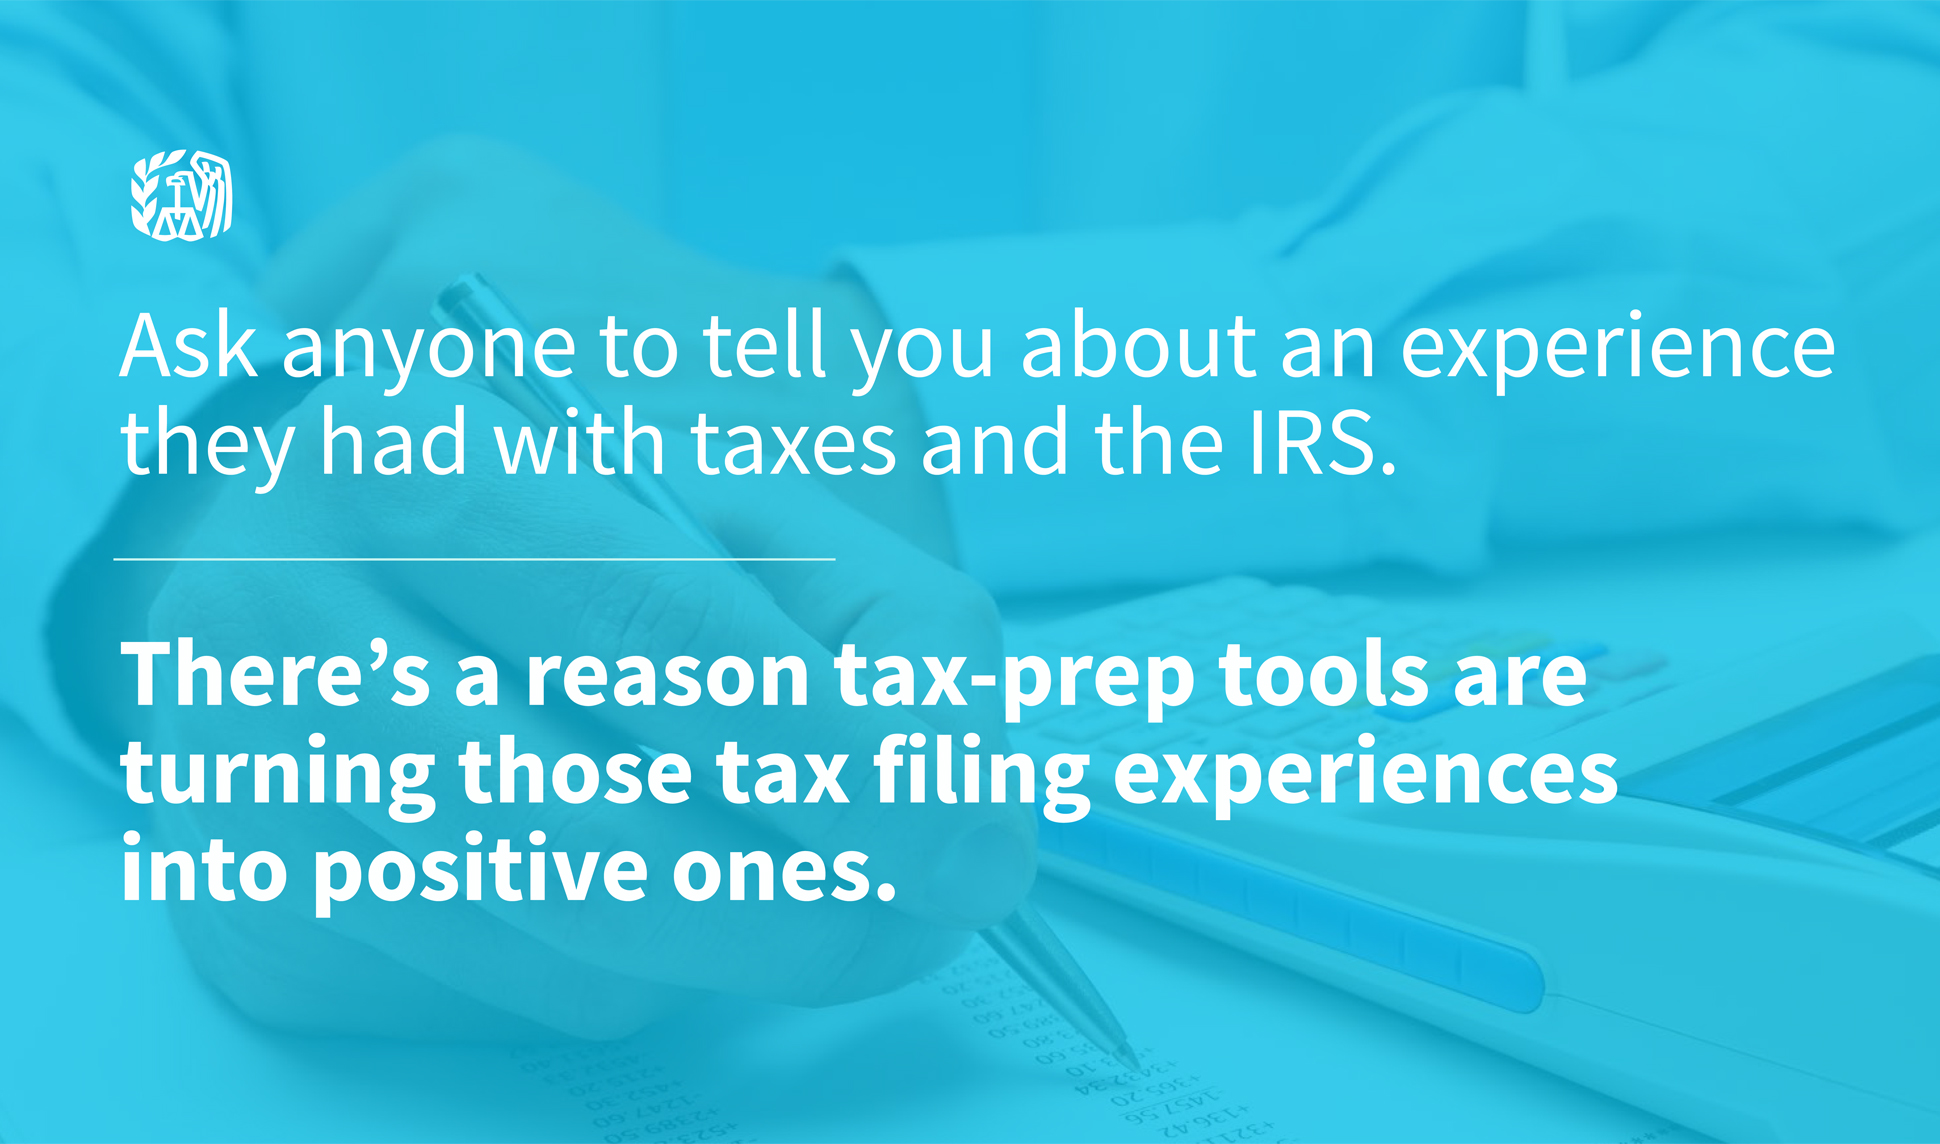 A page from a tax design challenge submission. Ask anyone to tell you about an experience they had with taxes and the IRS. There's a reason tax-prep tools are turning those tax filing experiences into positive ones.